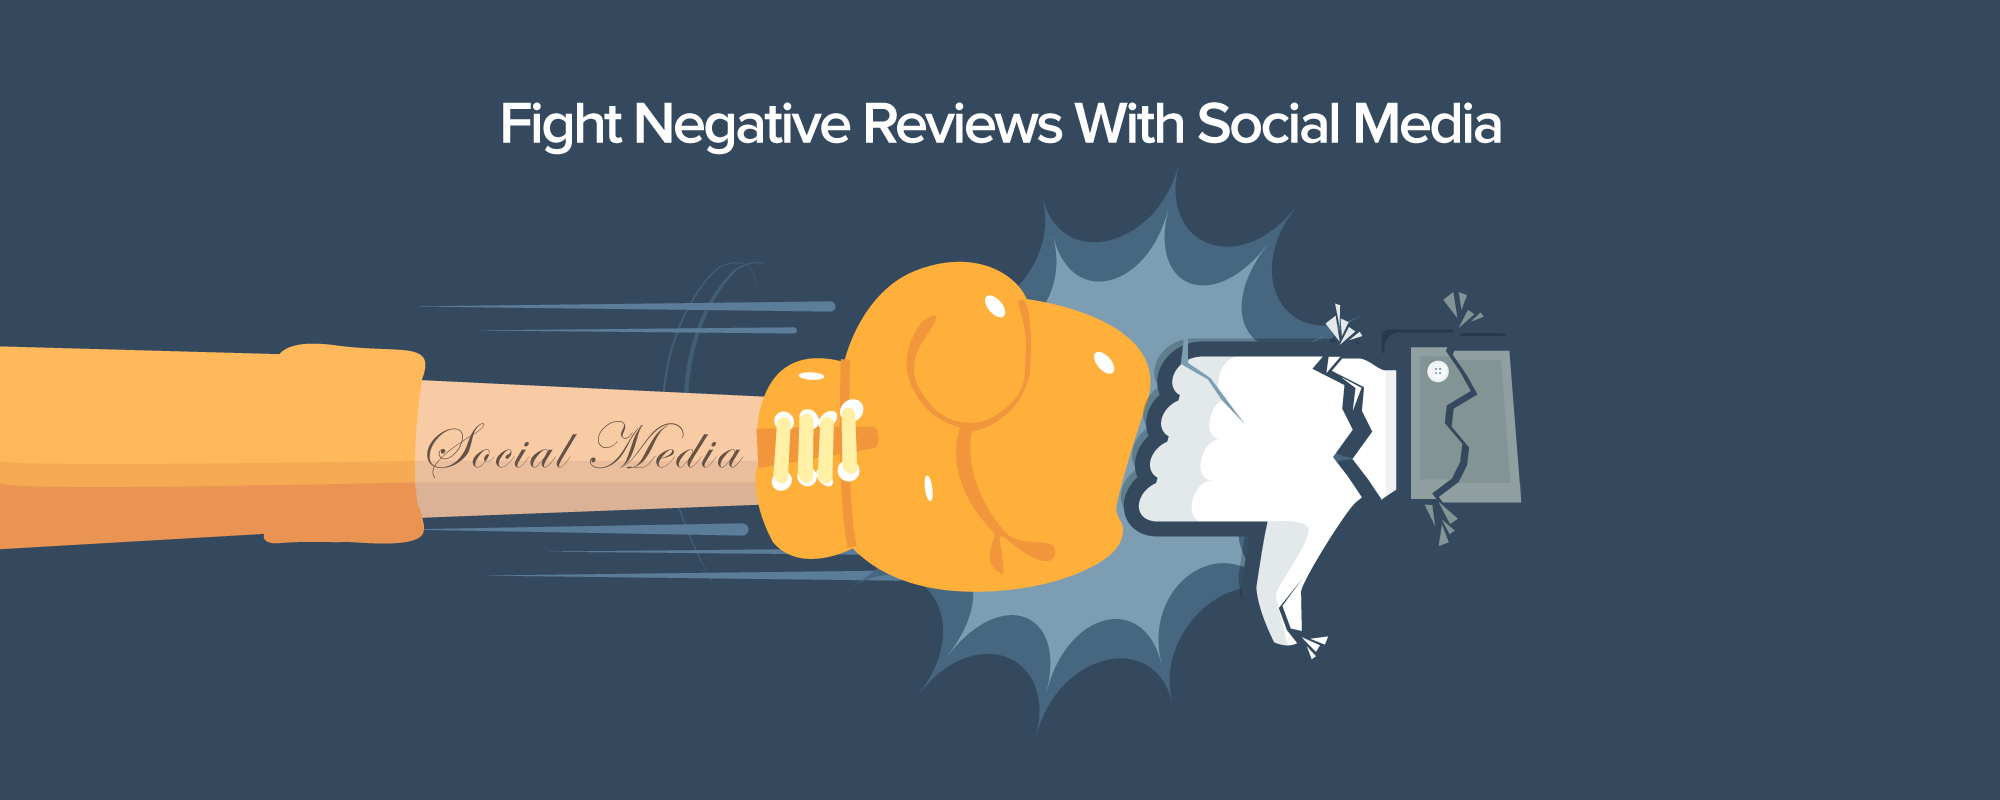 Fighting Negative Reviews and Feedbacks is Easier for B2B Businesses with Social Media